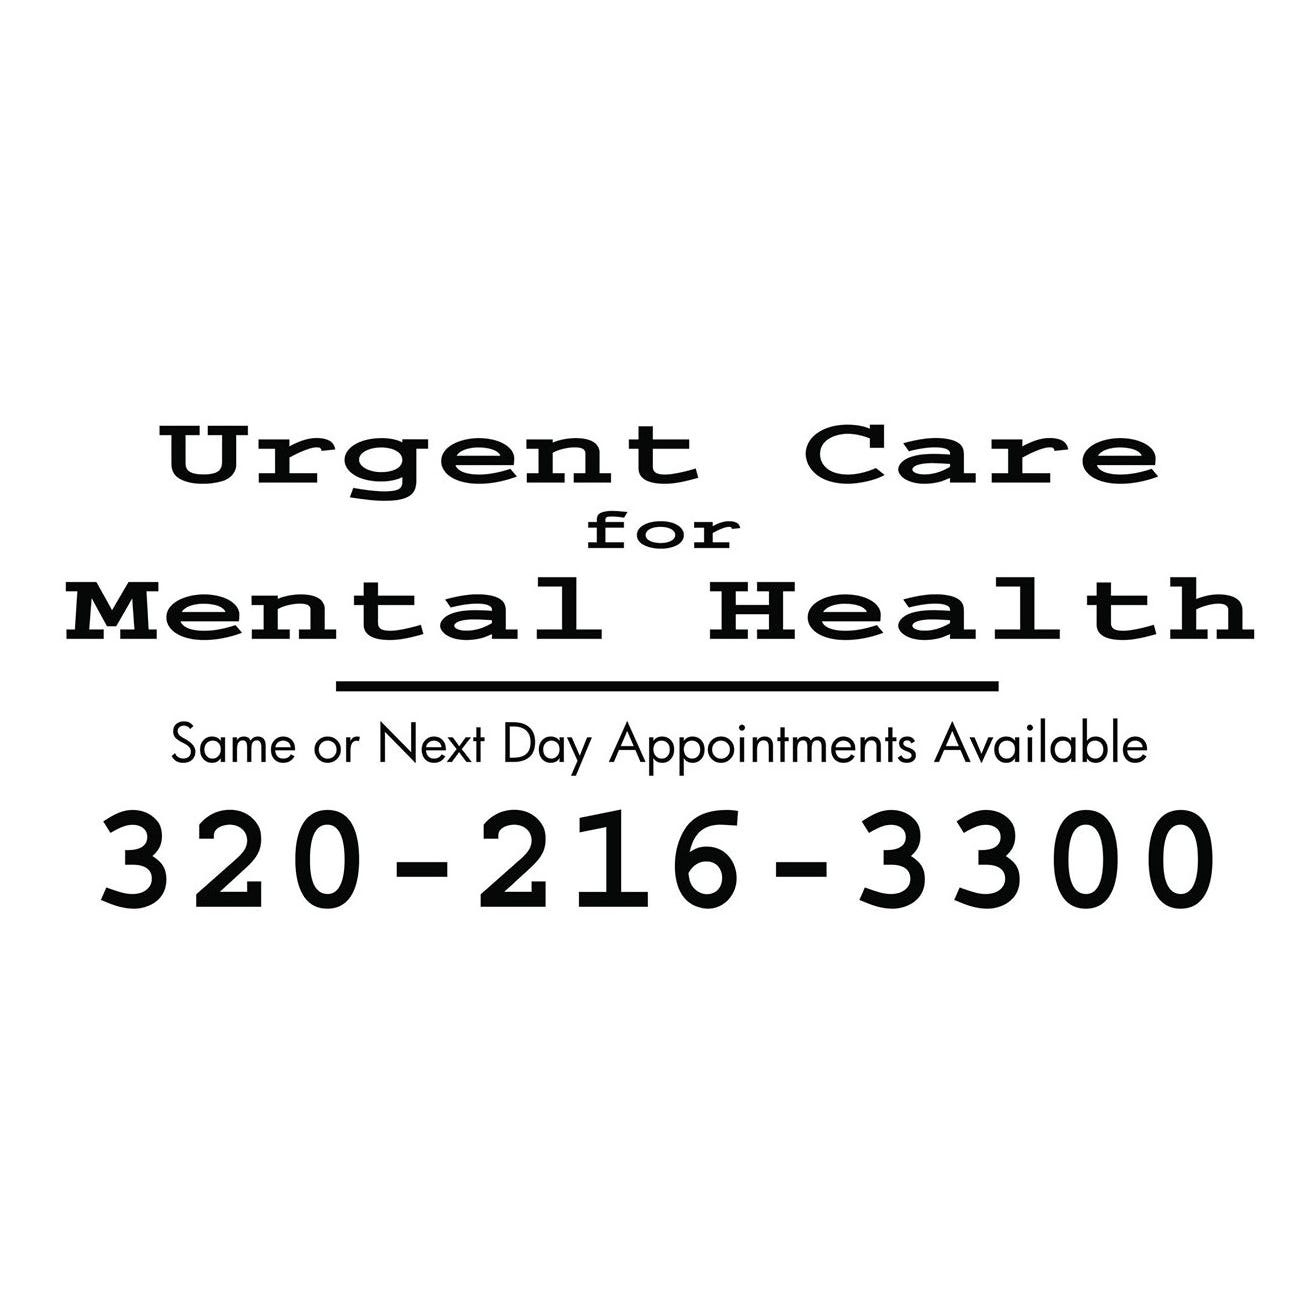 Waiting weeks for a mental health appointment? You don't have to with urgent care program